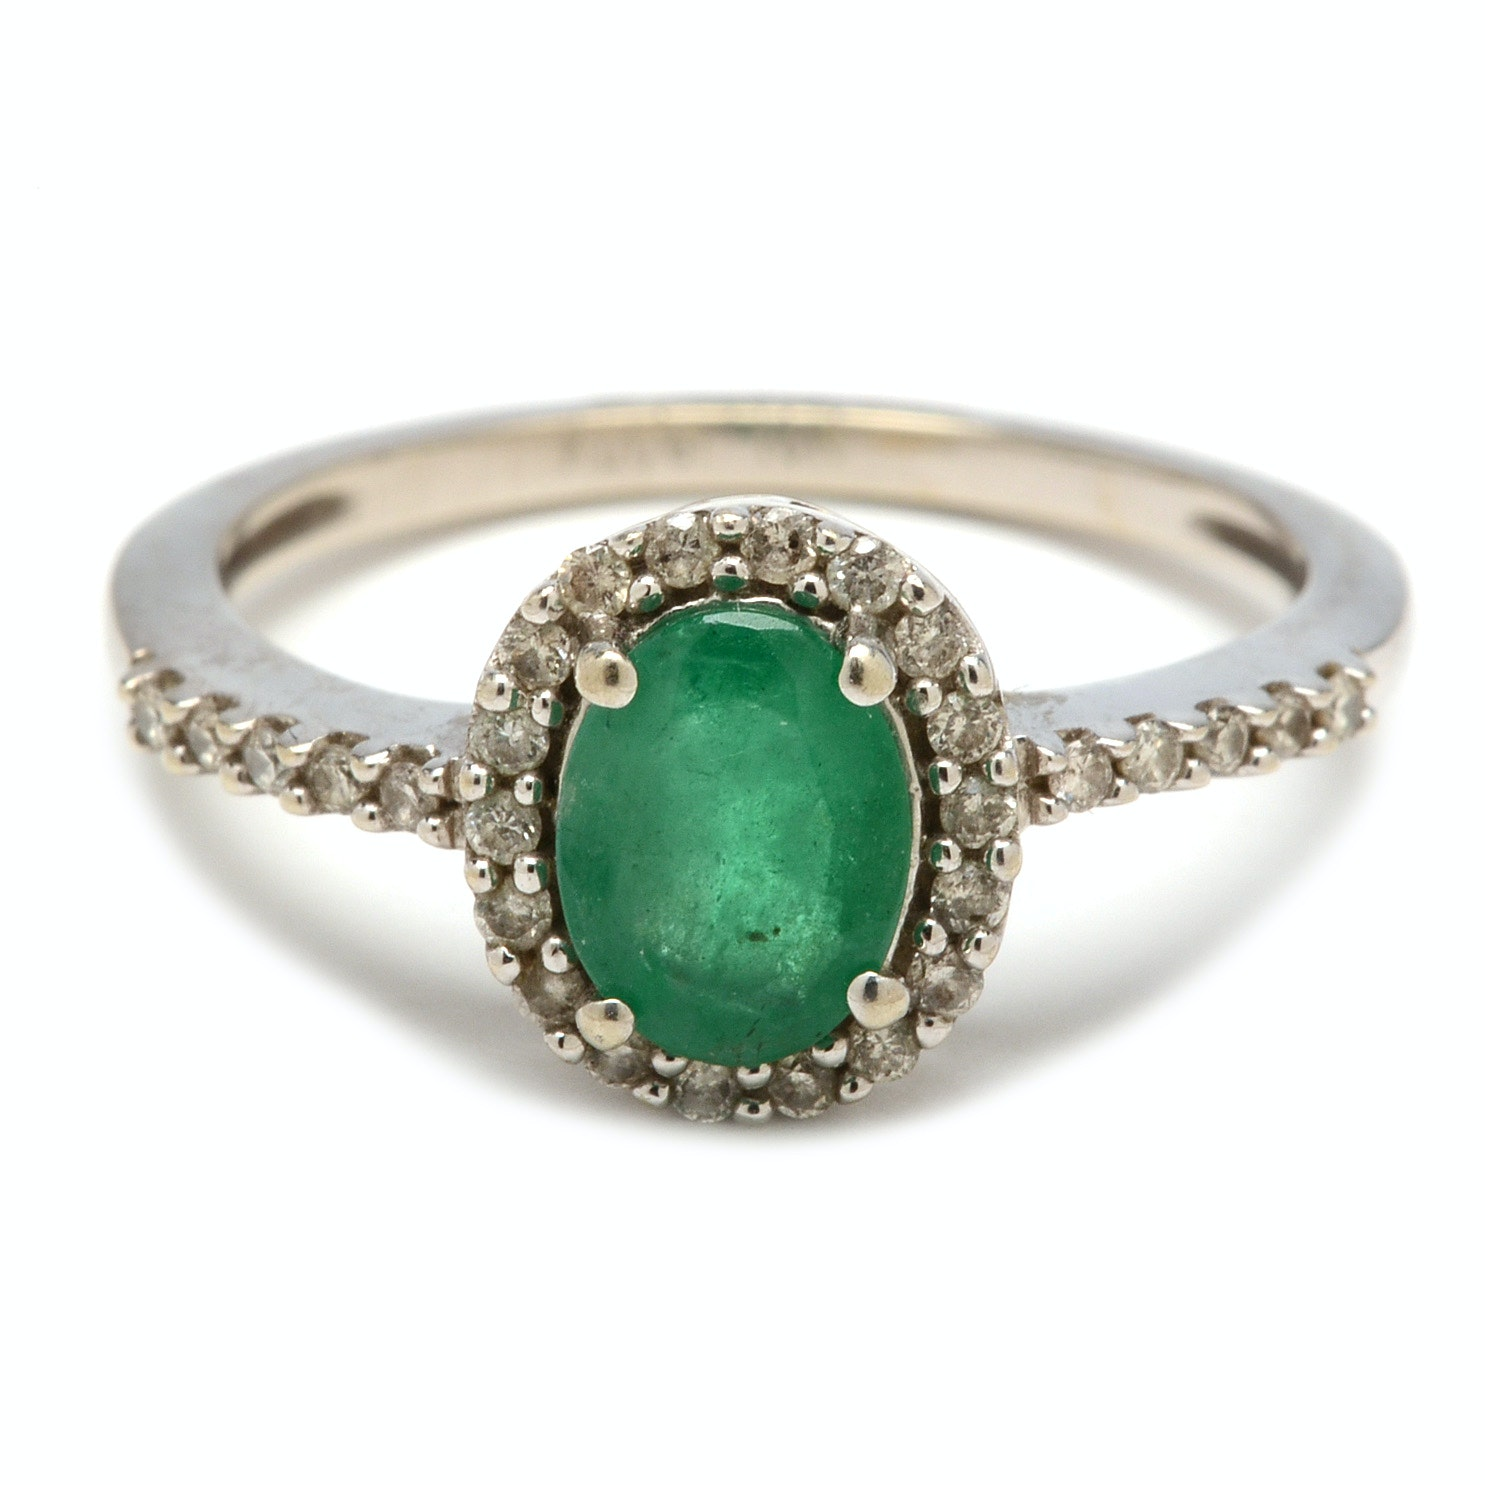 10K White Gold Emerald and Diamond Halo Ring